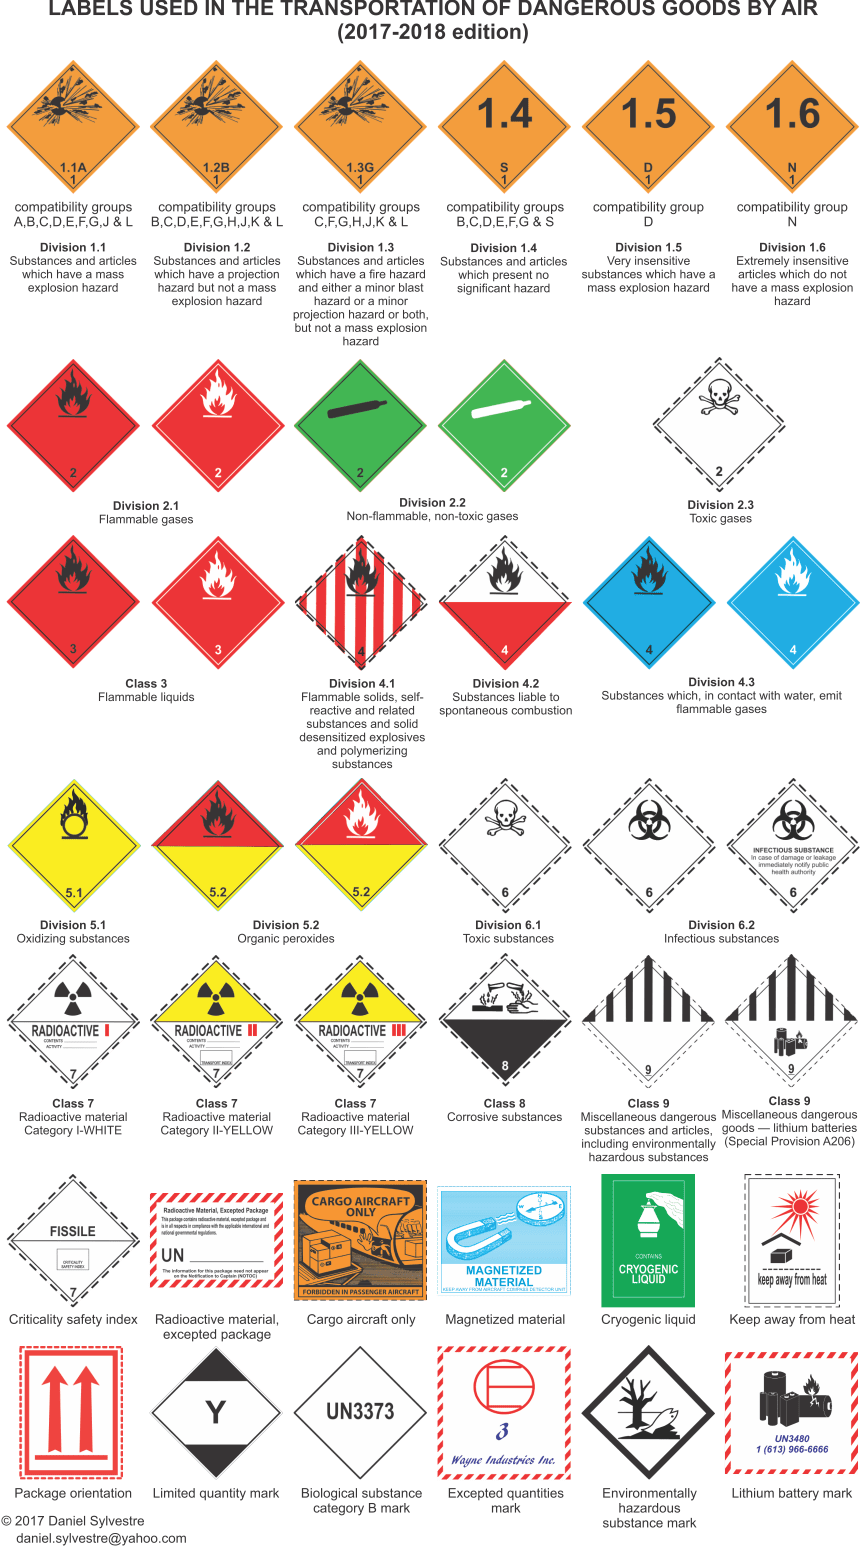 Labels used in the transportation of dangerous goods by